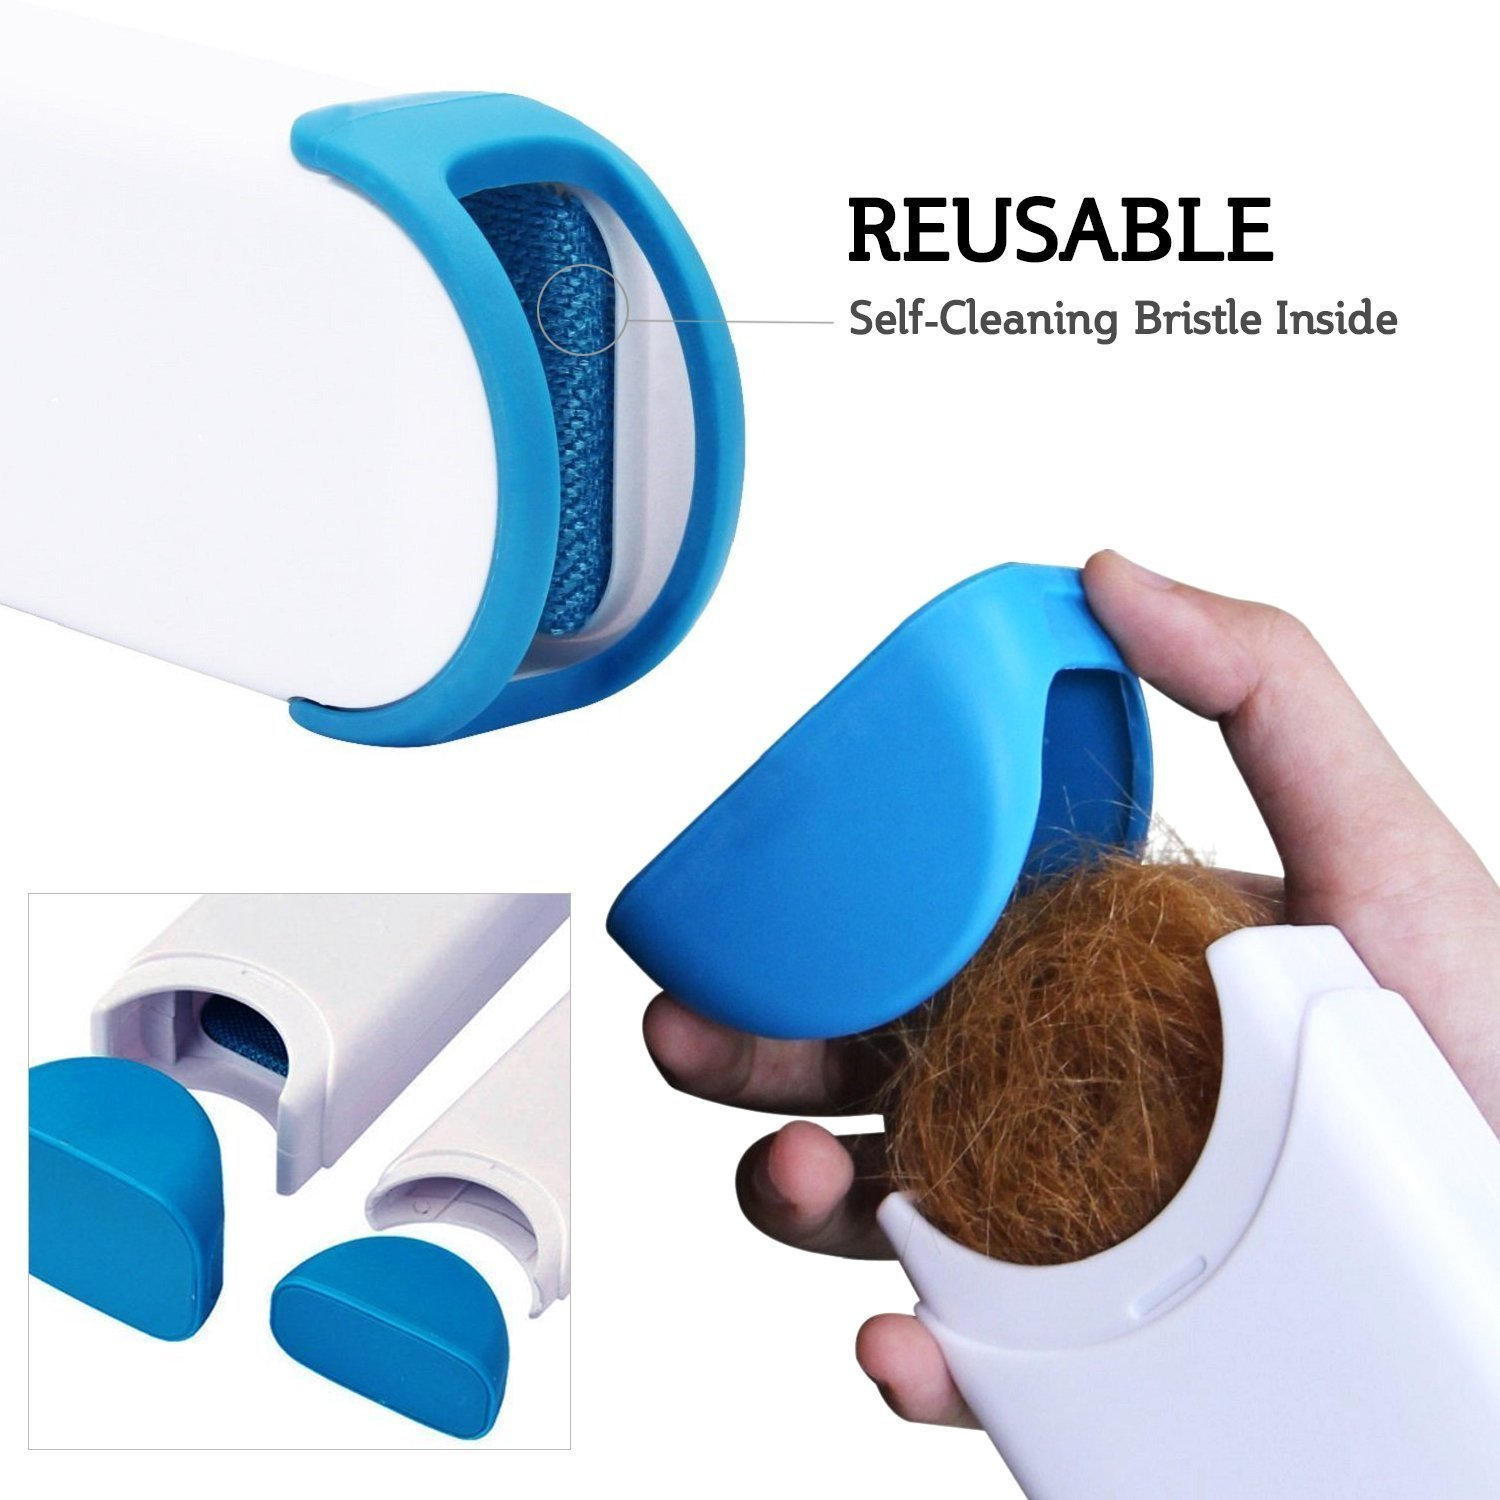 Pet Fur & Lint Remover with Self-Cleaning Base, Furniture, Clothes, Carpets and Car Seats, and Is A Reusable Remover for Cat and Dog Hair, Fur, Wool and Leather Wool.